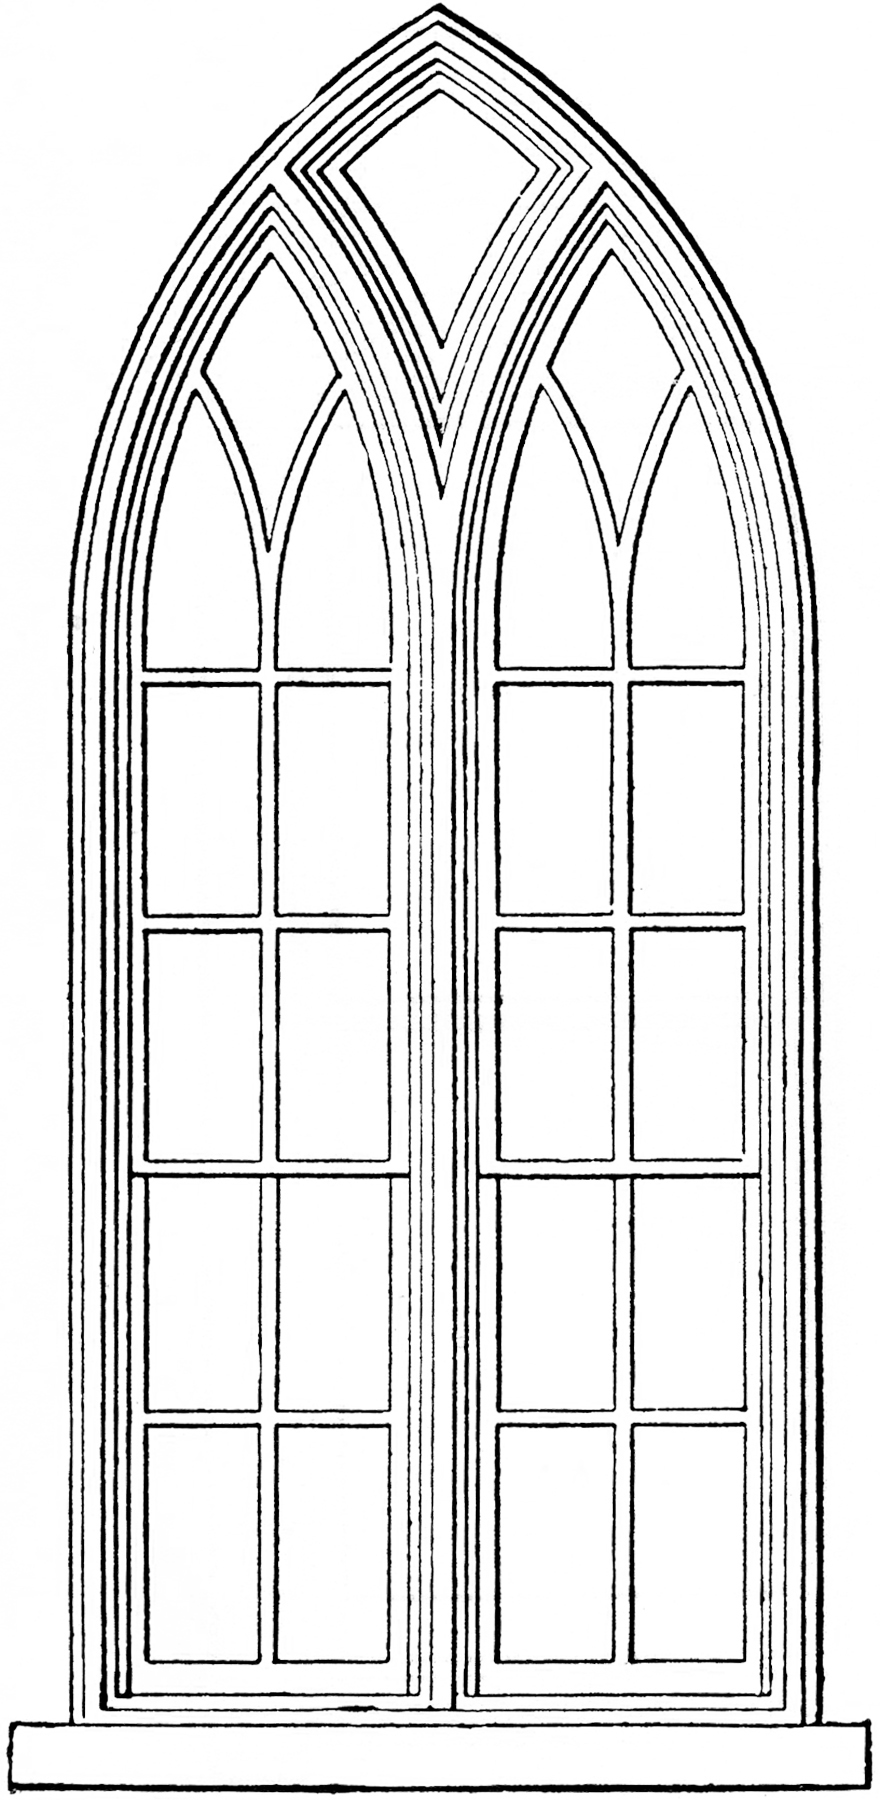 Gothic church windows clip art the graphics fairy for Old black and white photos for sale